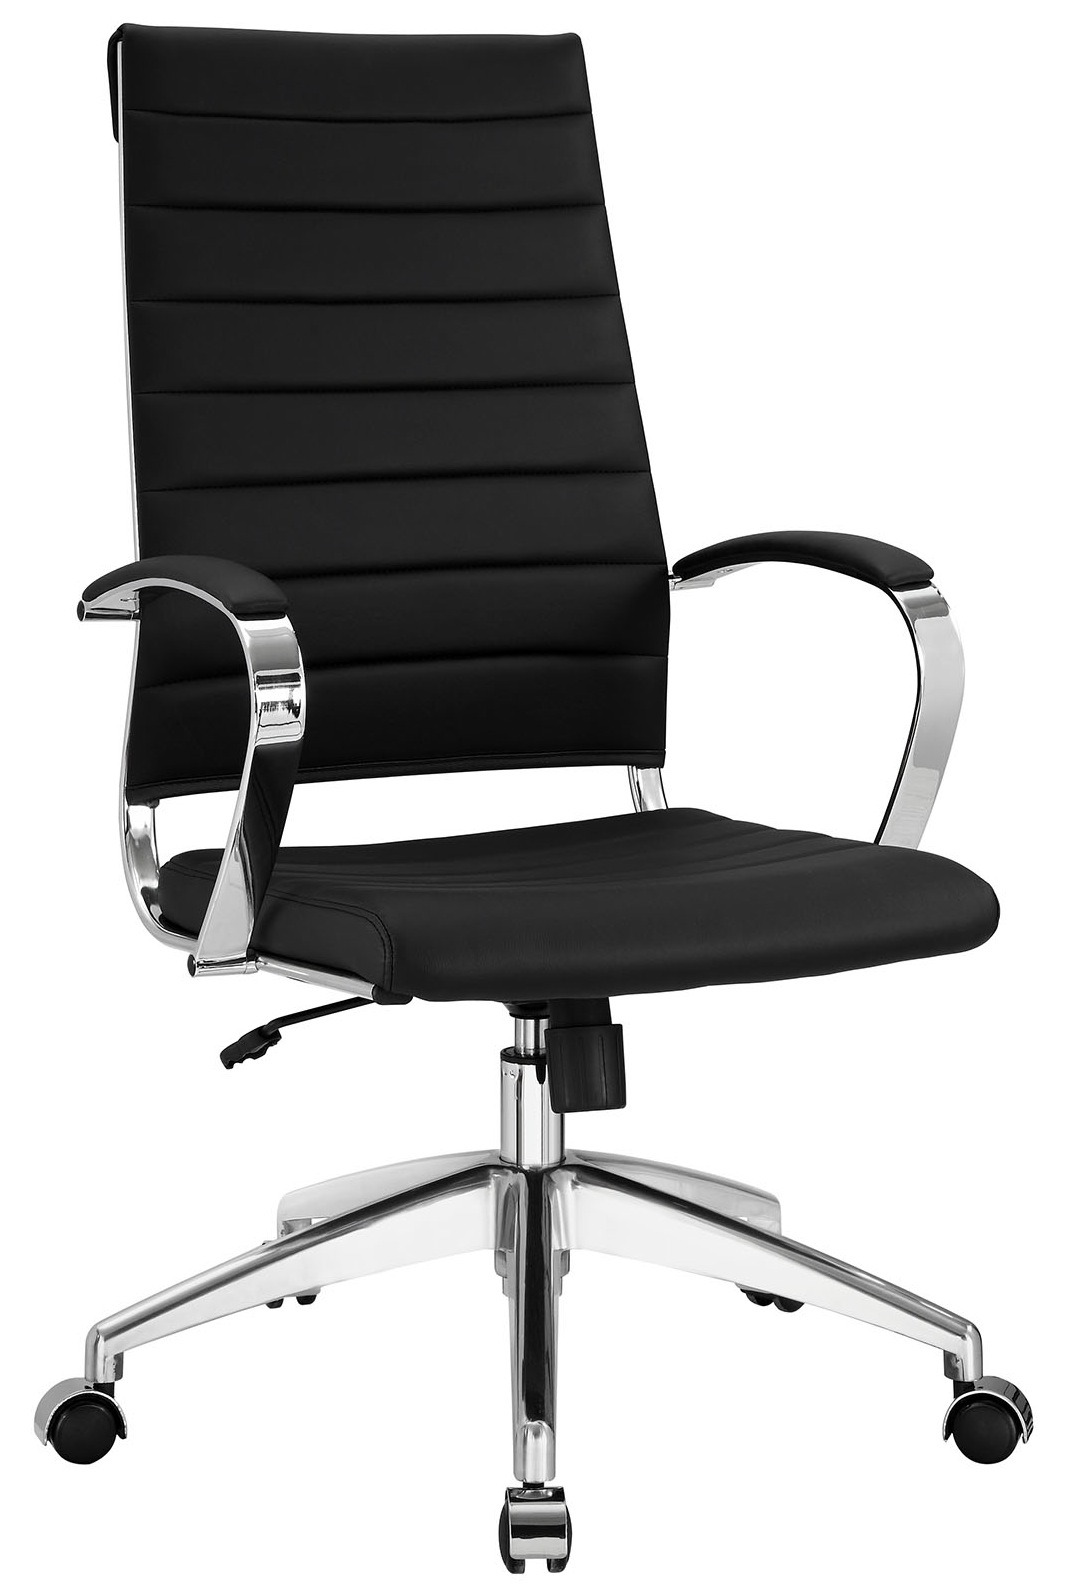 Black and white office chair -  Aria Hb Office Chair Black Jpg